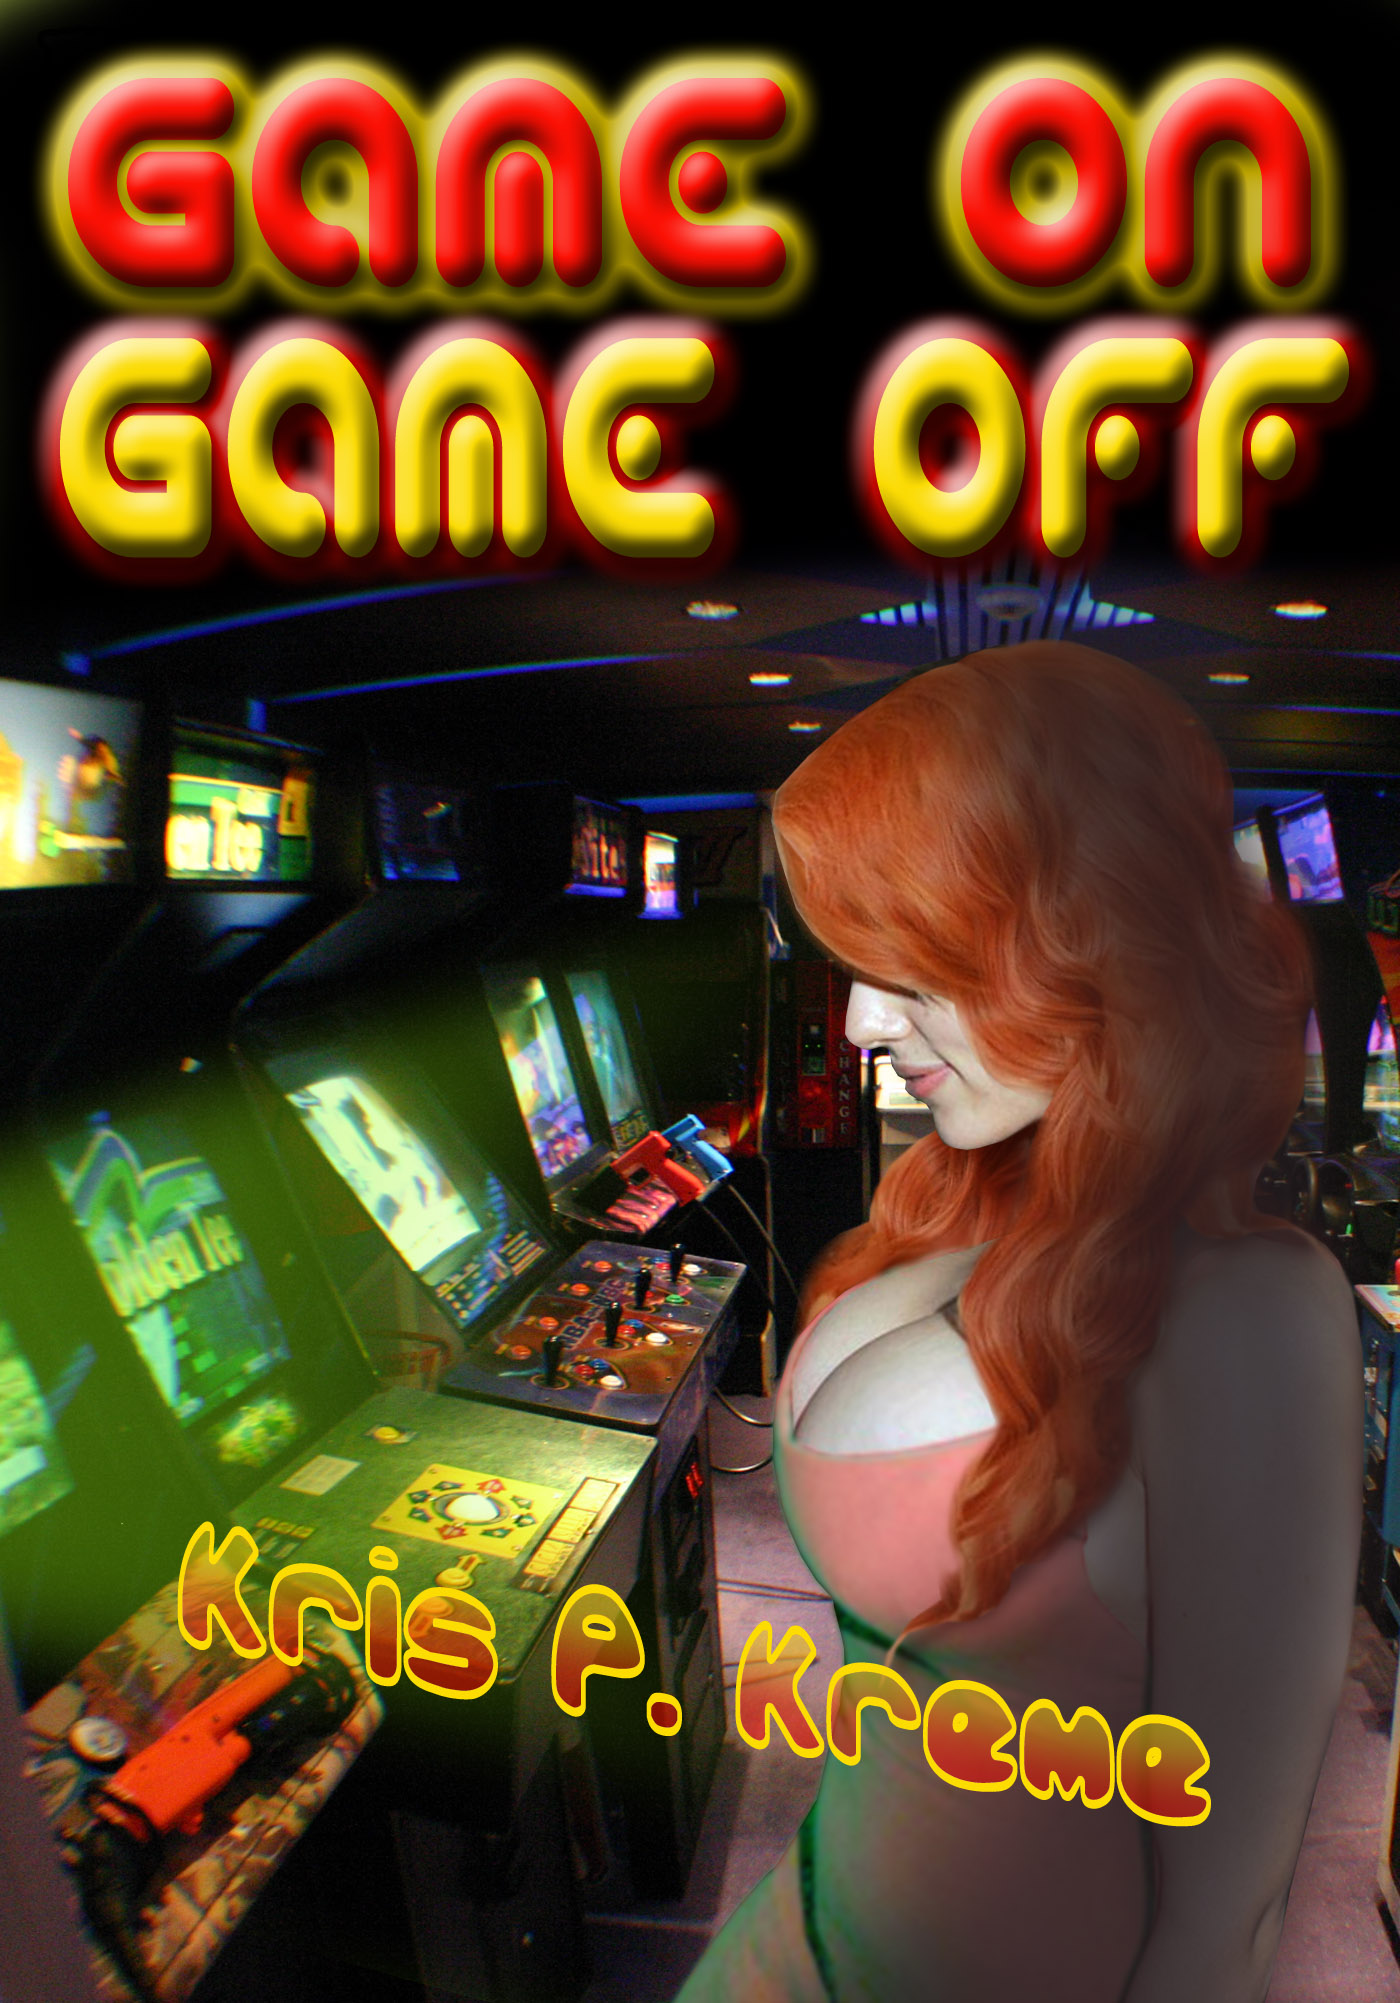 Game On Game Off by Kris P. Kreme